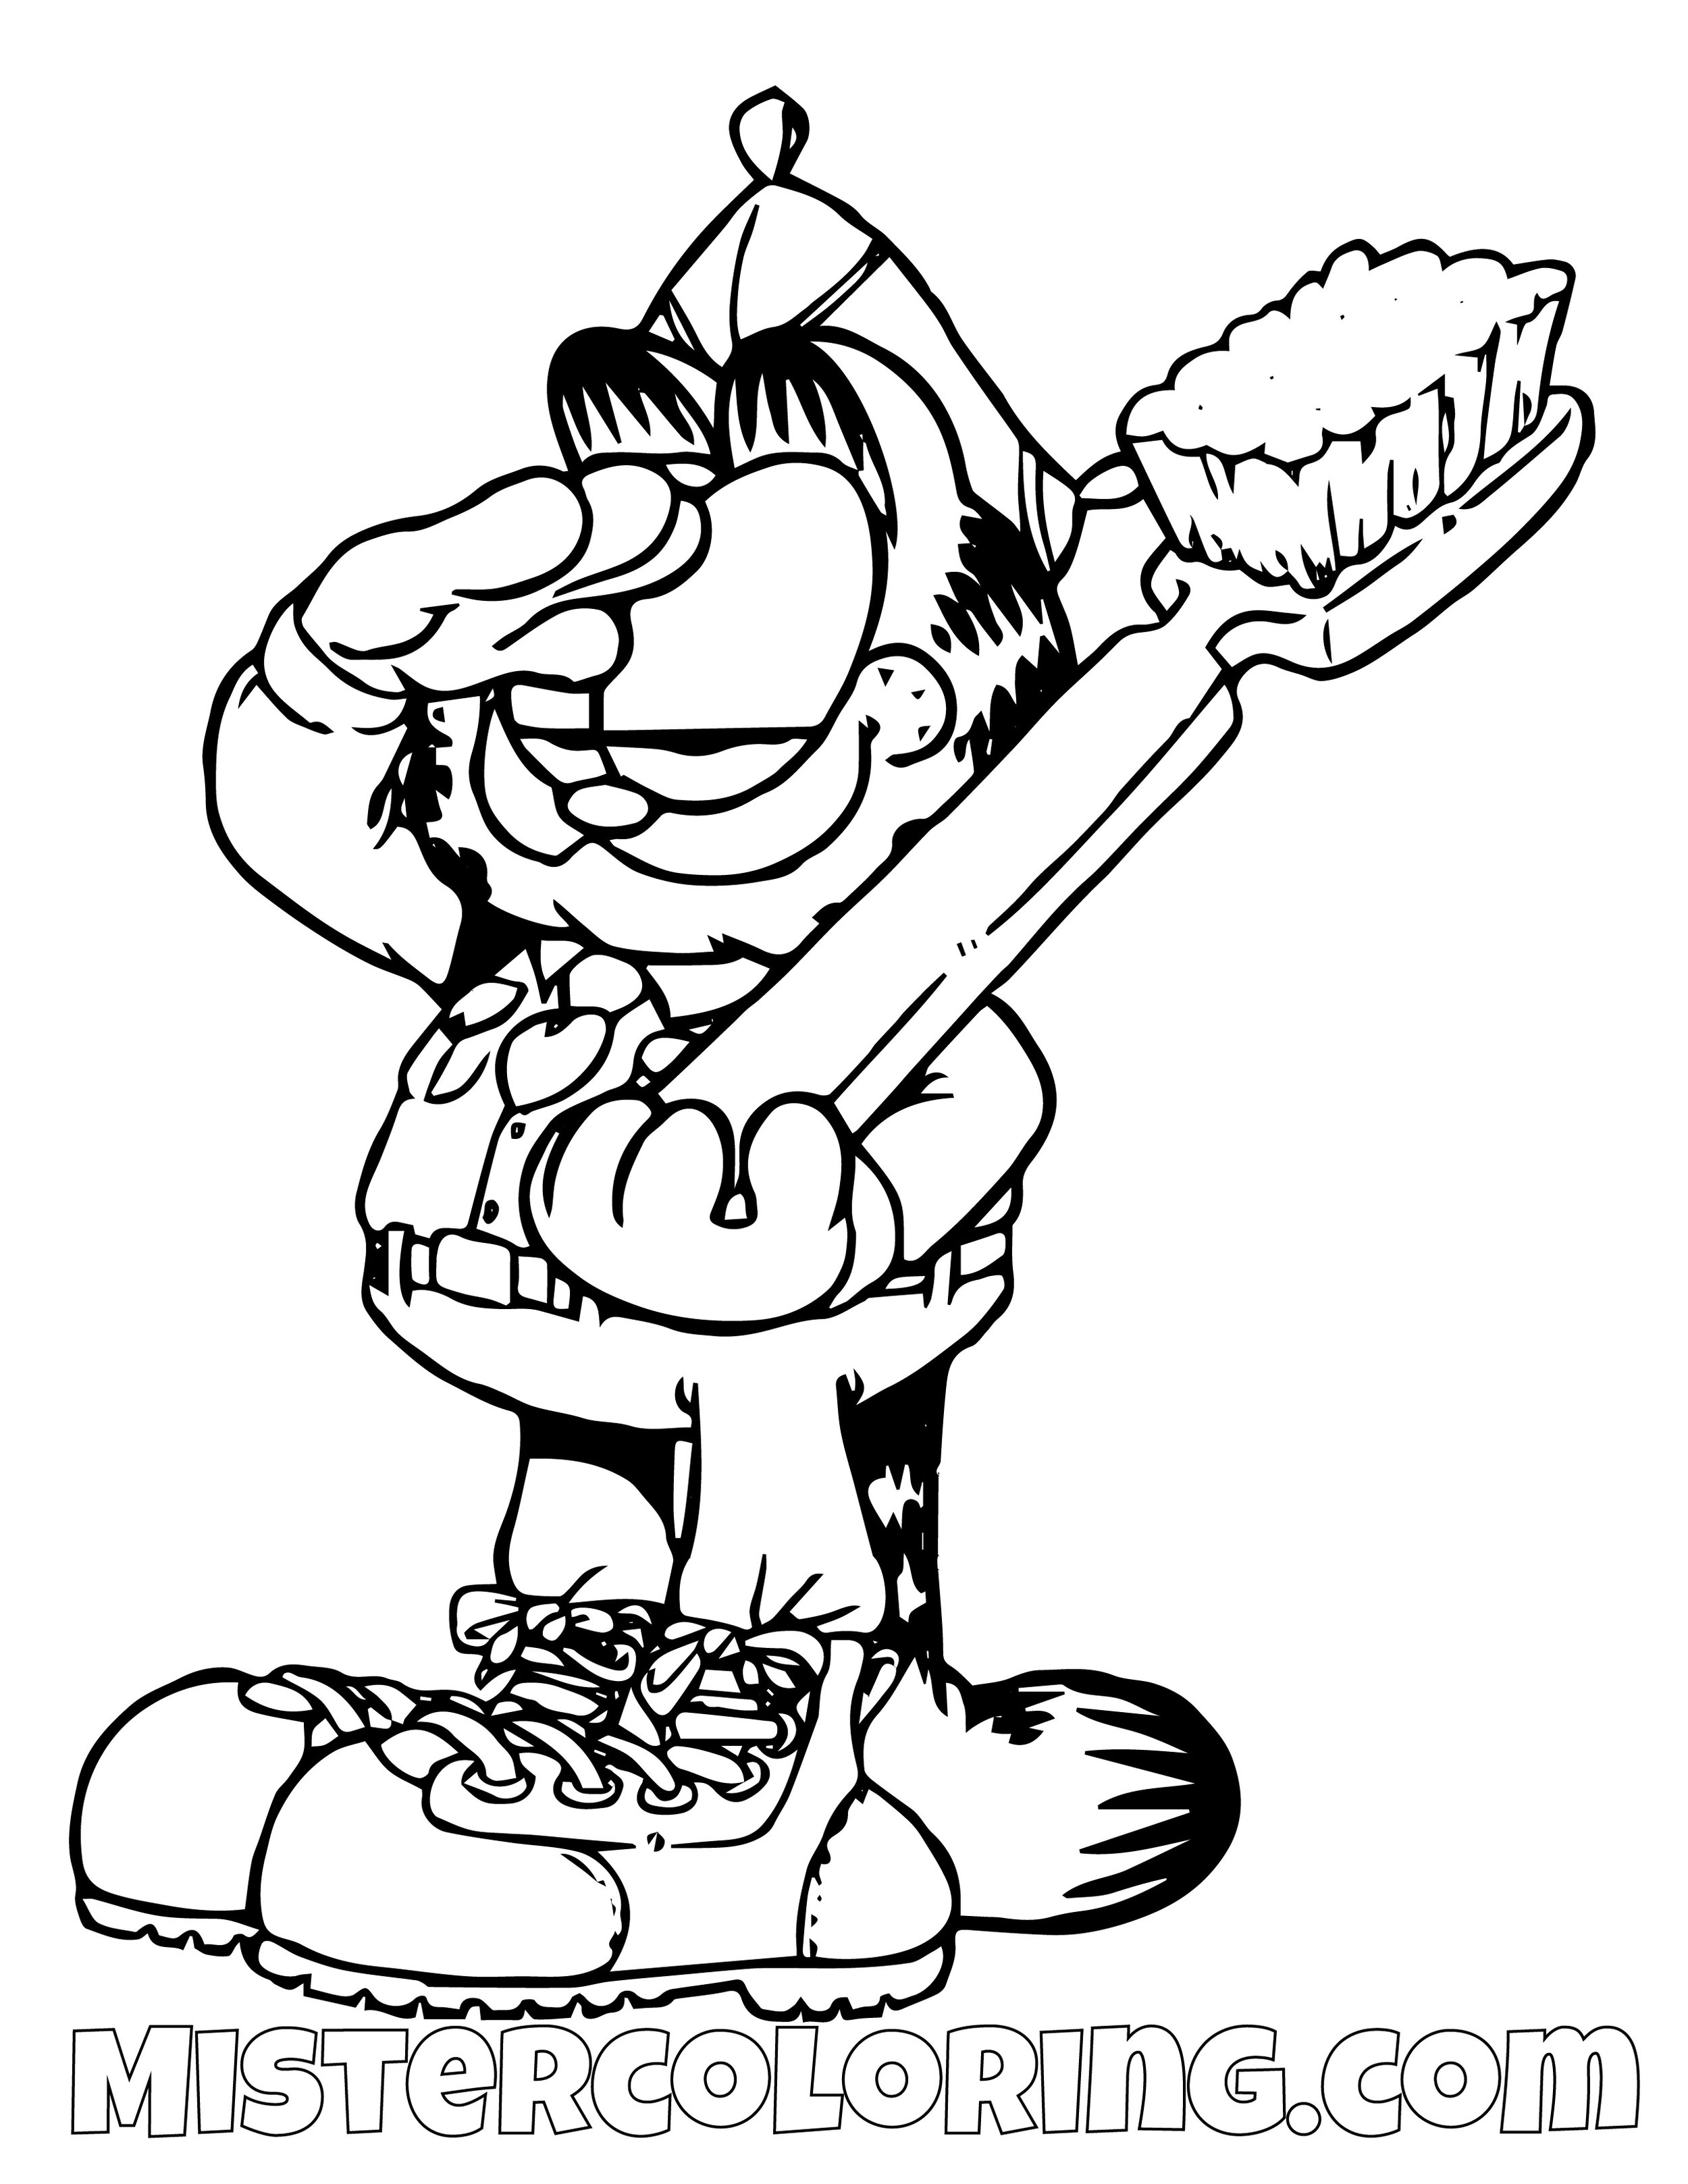 Garfield Saluting With Toothbrush Coloring Page